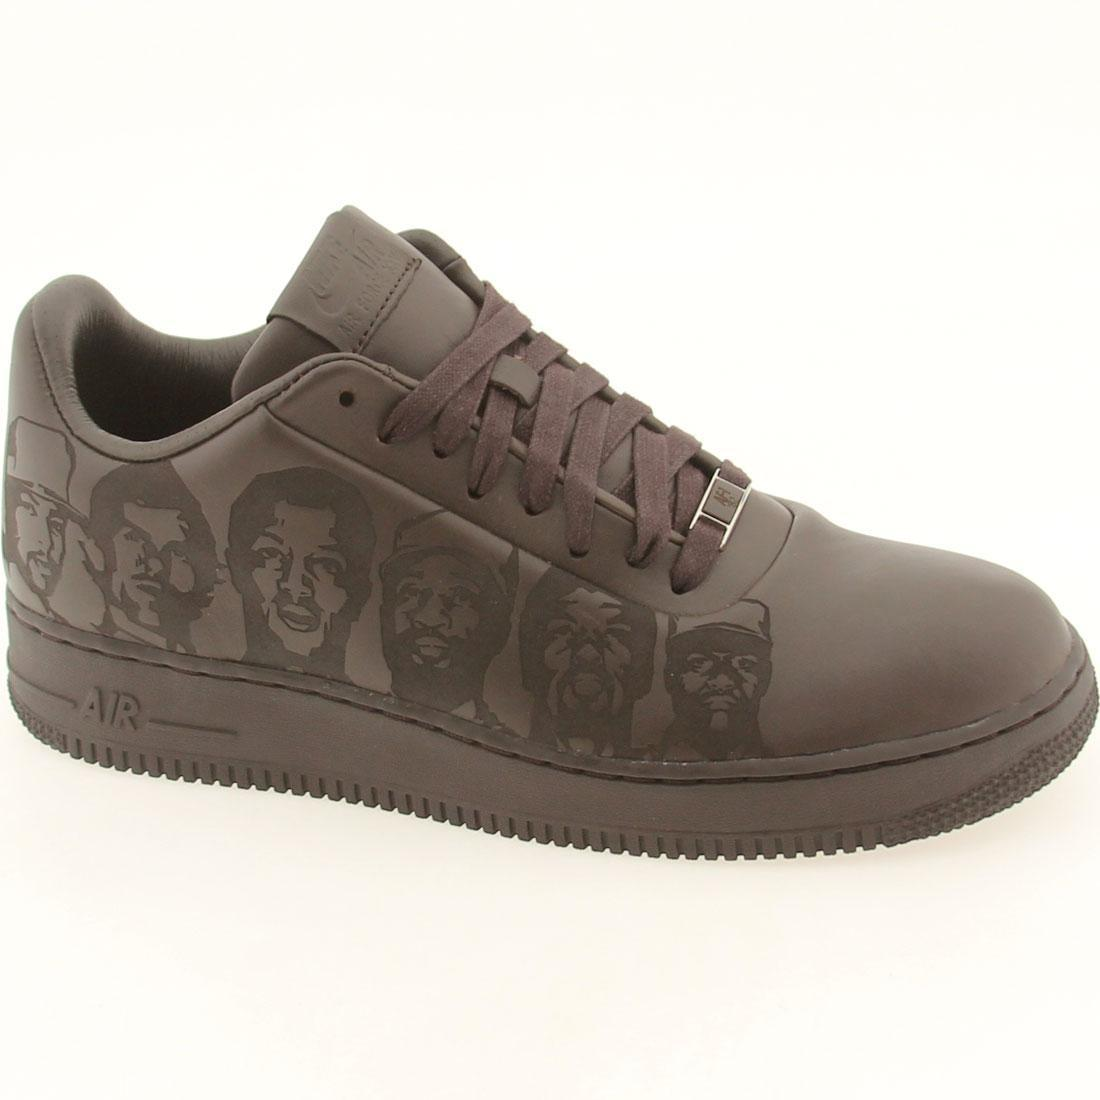 Nike Air Force 1 '07 Low Supreme (dark cinder / dark cind...